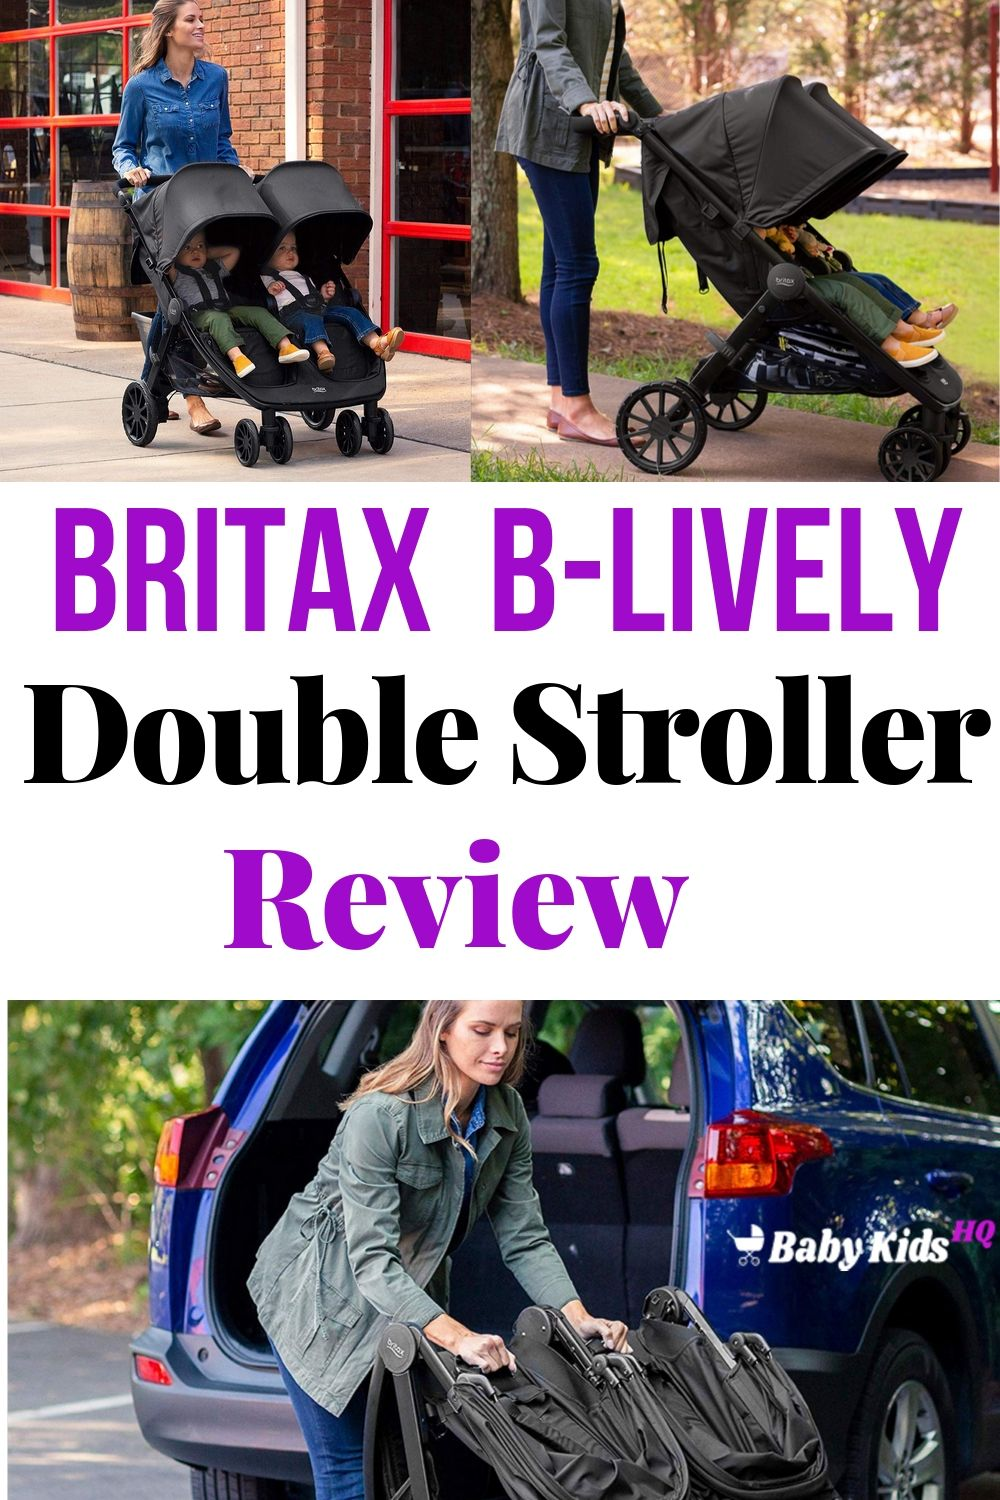 The Britax B-Lively is a lightweight and compact double stroller with state of the art suspension, an accessible storage basket, fully reclining seats and huge sun canopies.This double stroller is also an easy to use travel system thanks to Britax's Click & Go receivers! Read on to find out why reviewers are raving!